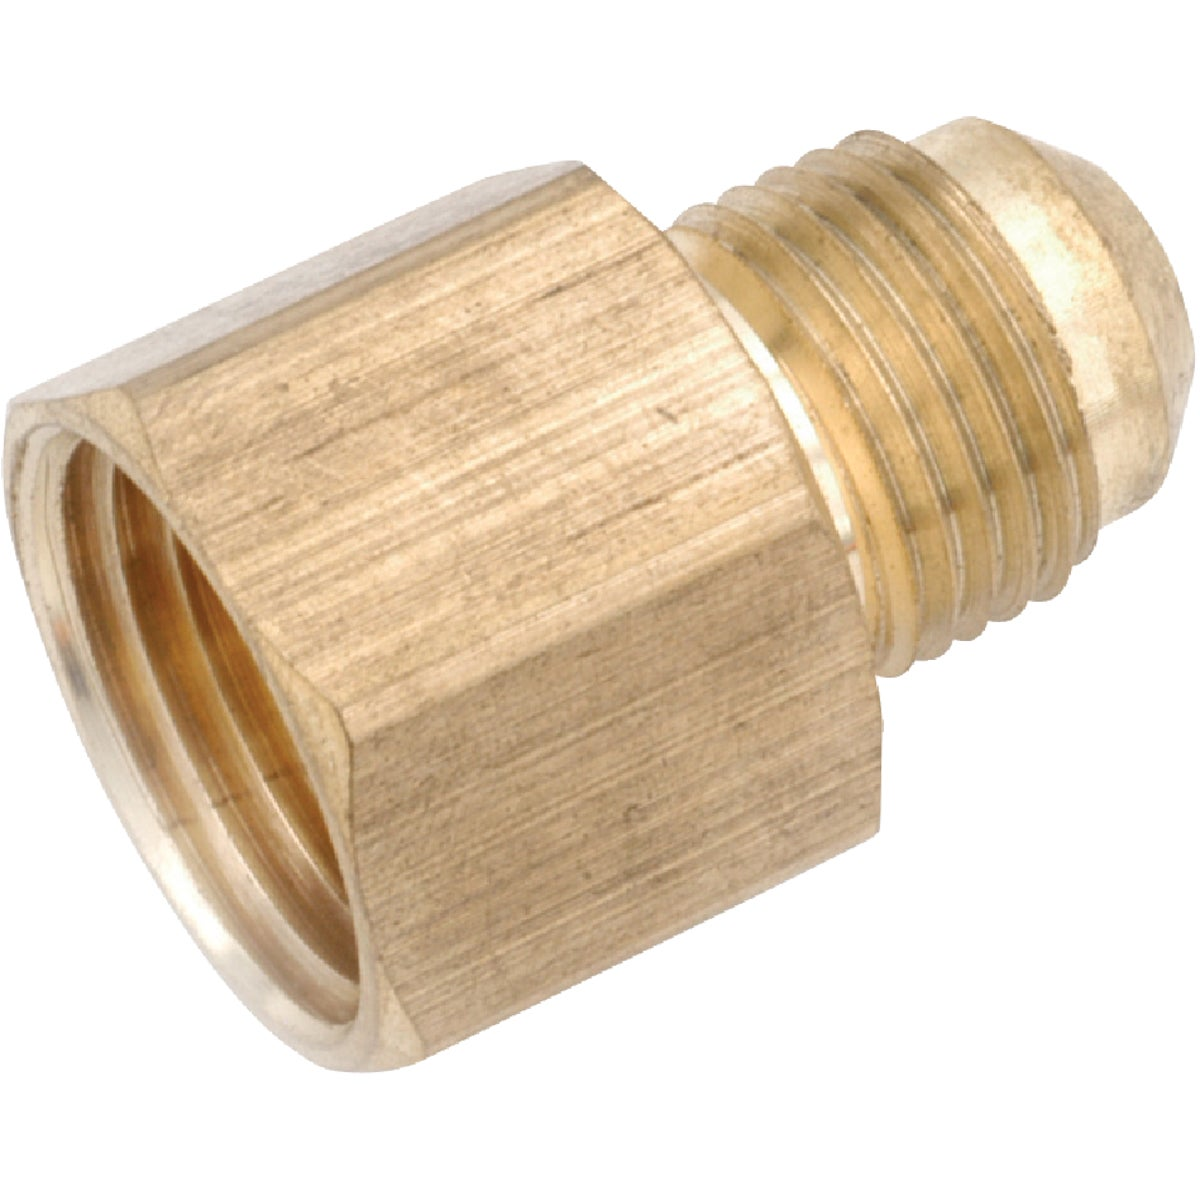 5/8X3/4 FIP CONNECTOR - 754046-1012 by Anderson Metals Corp